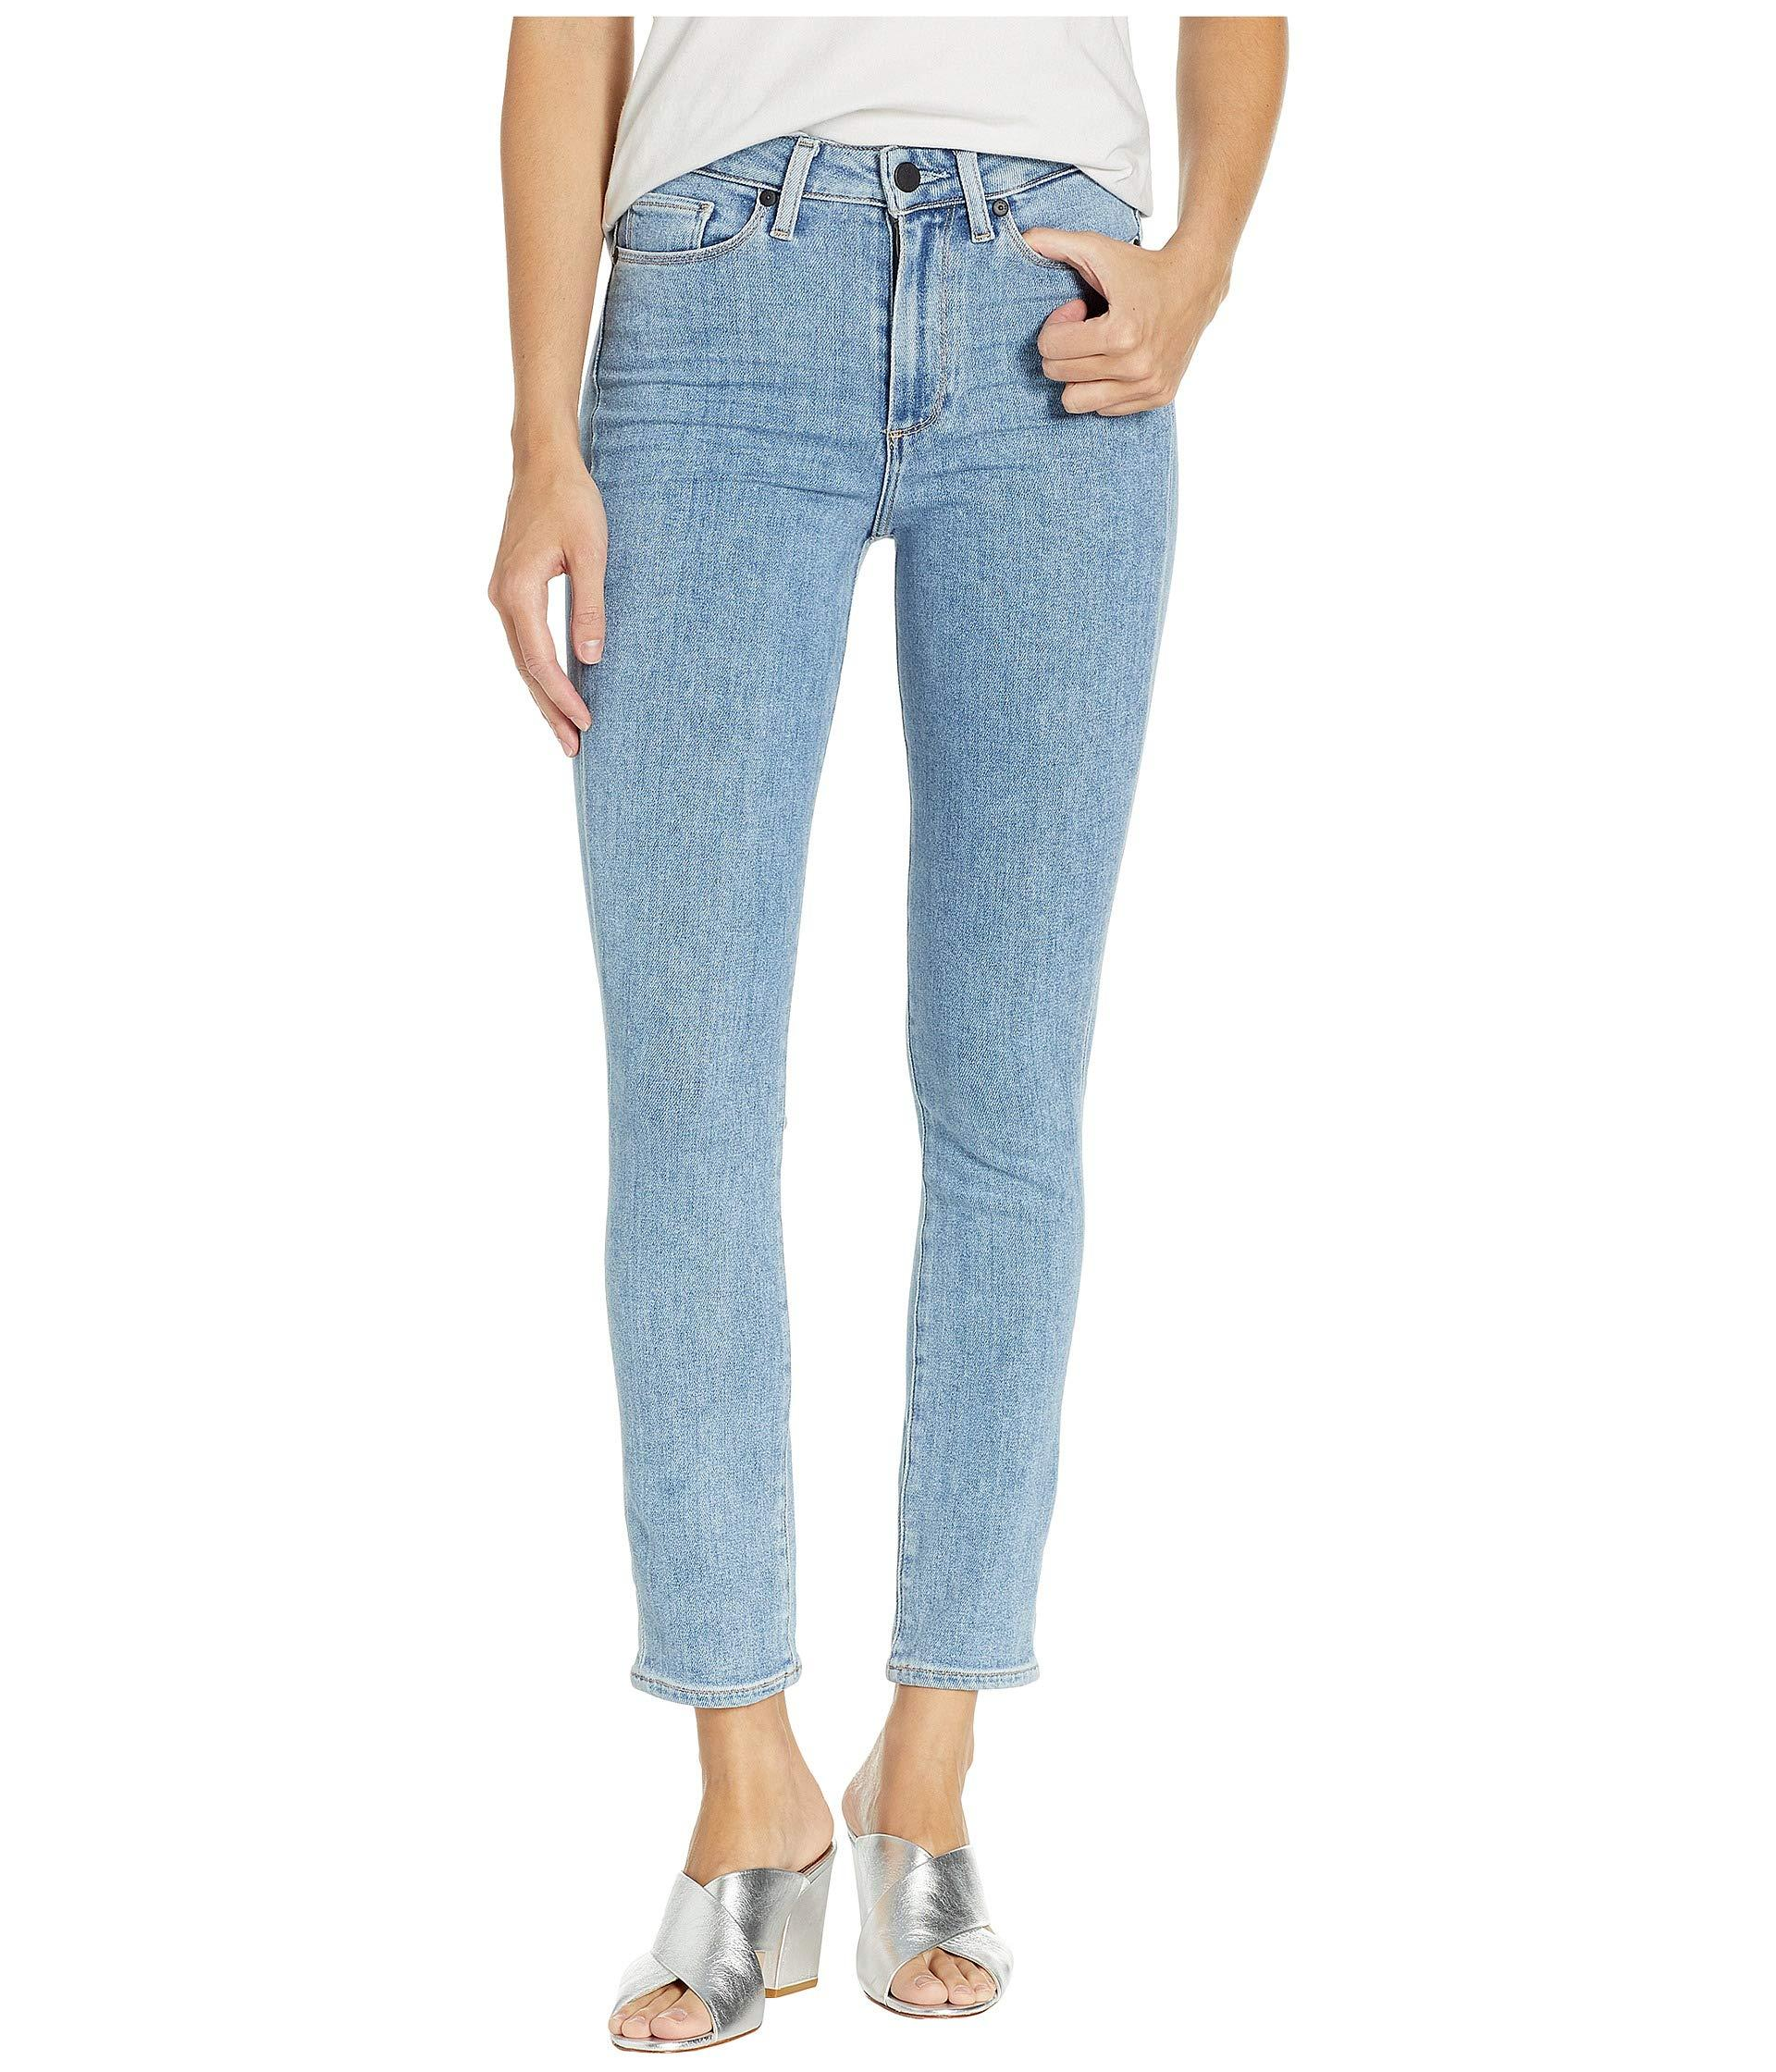 e1354b1408 Lyst - PAIGE Margot Ankle Peg In Miami (miami) Women's Jeans in Blue